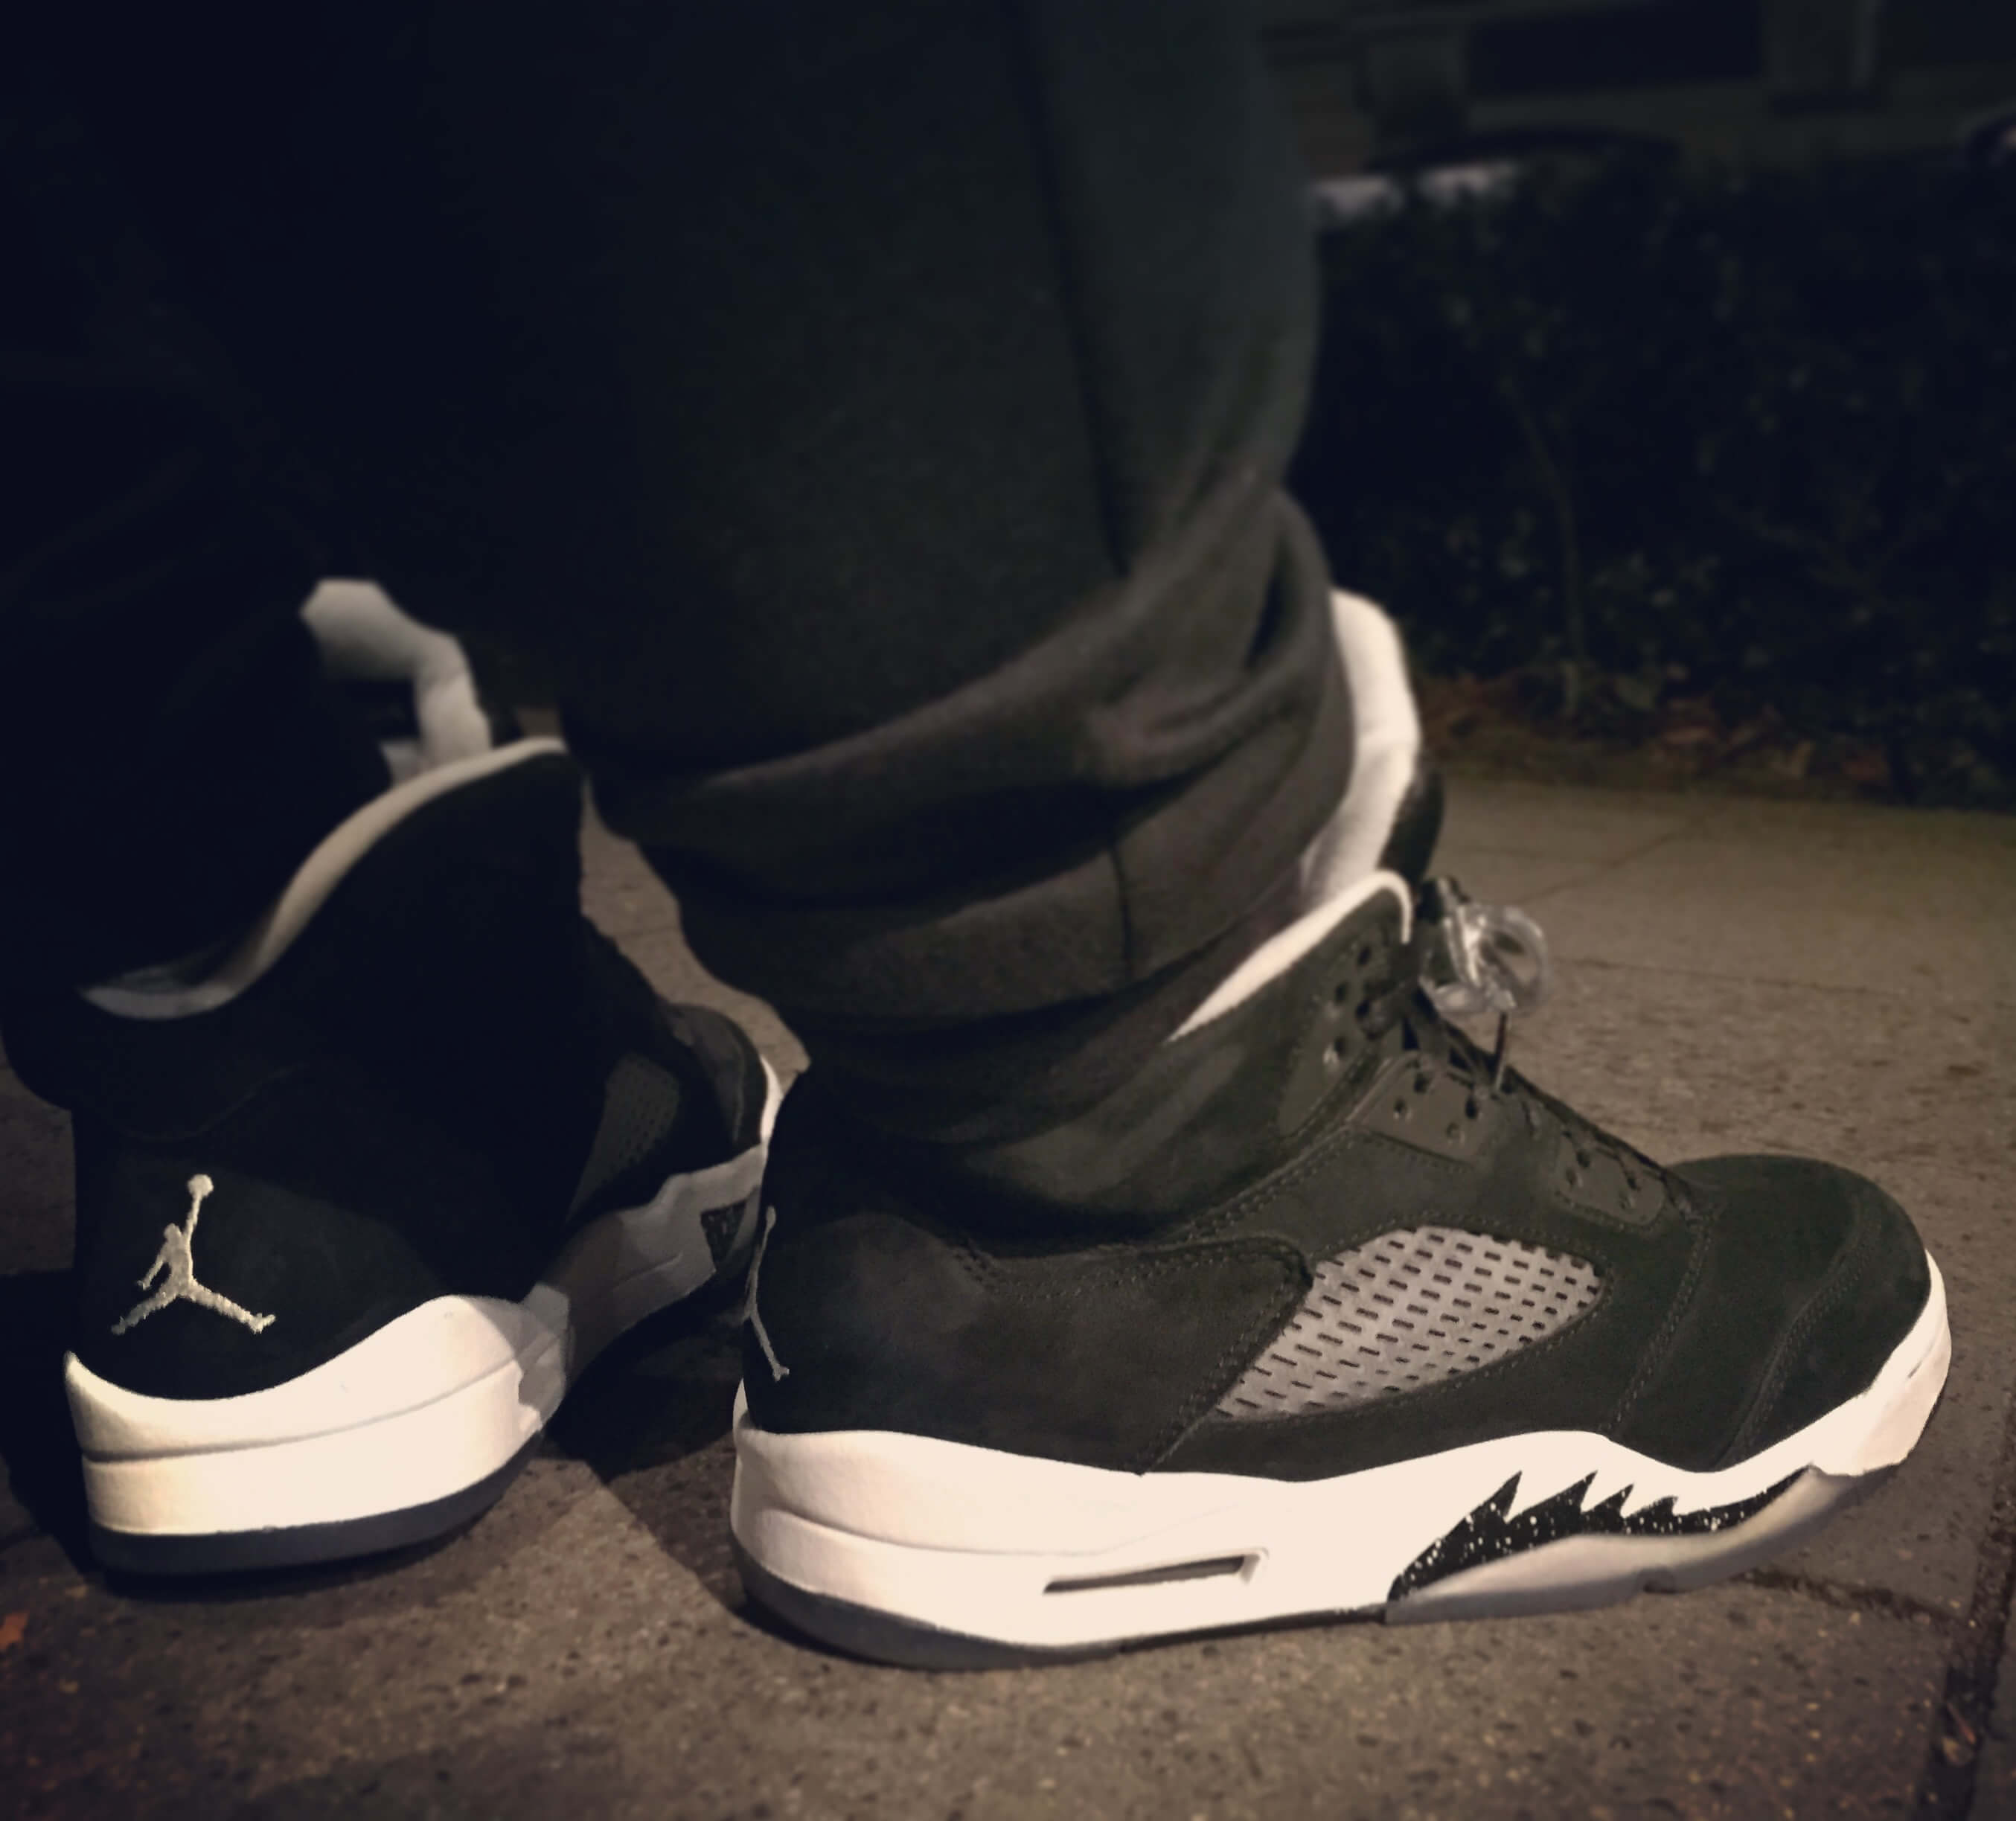 Air-Jordan-5-Oreo-Rear-View-Benstah-Onfeet